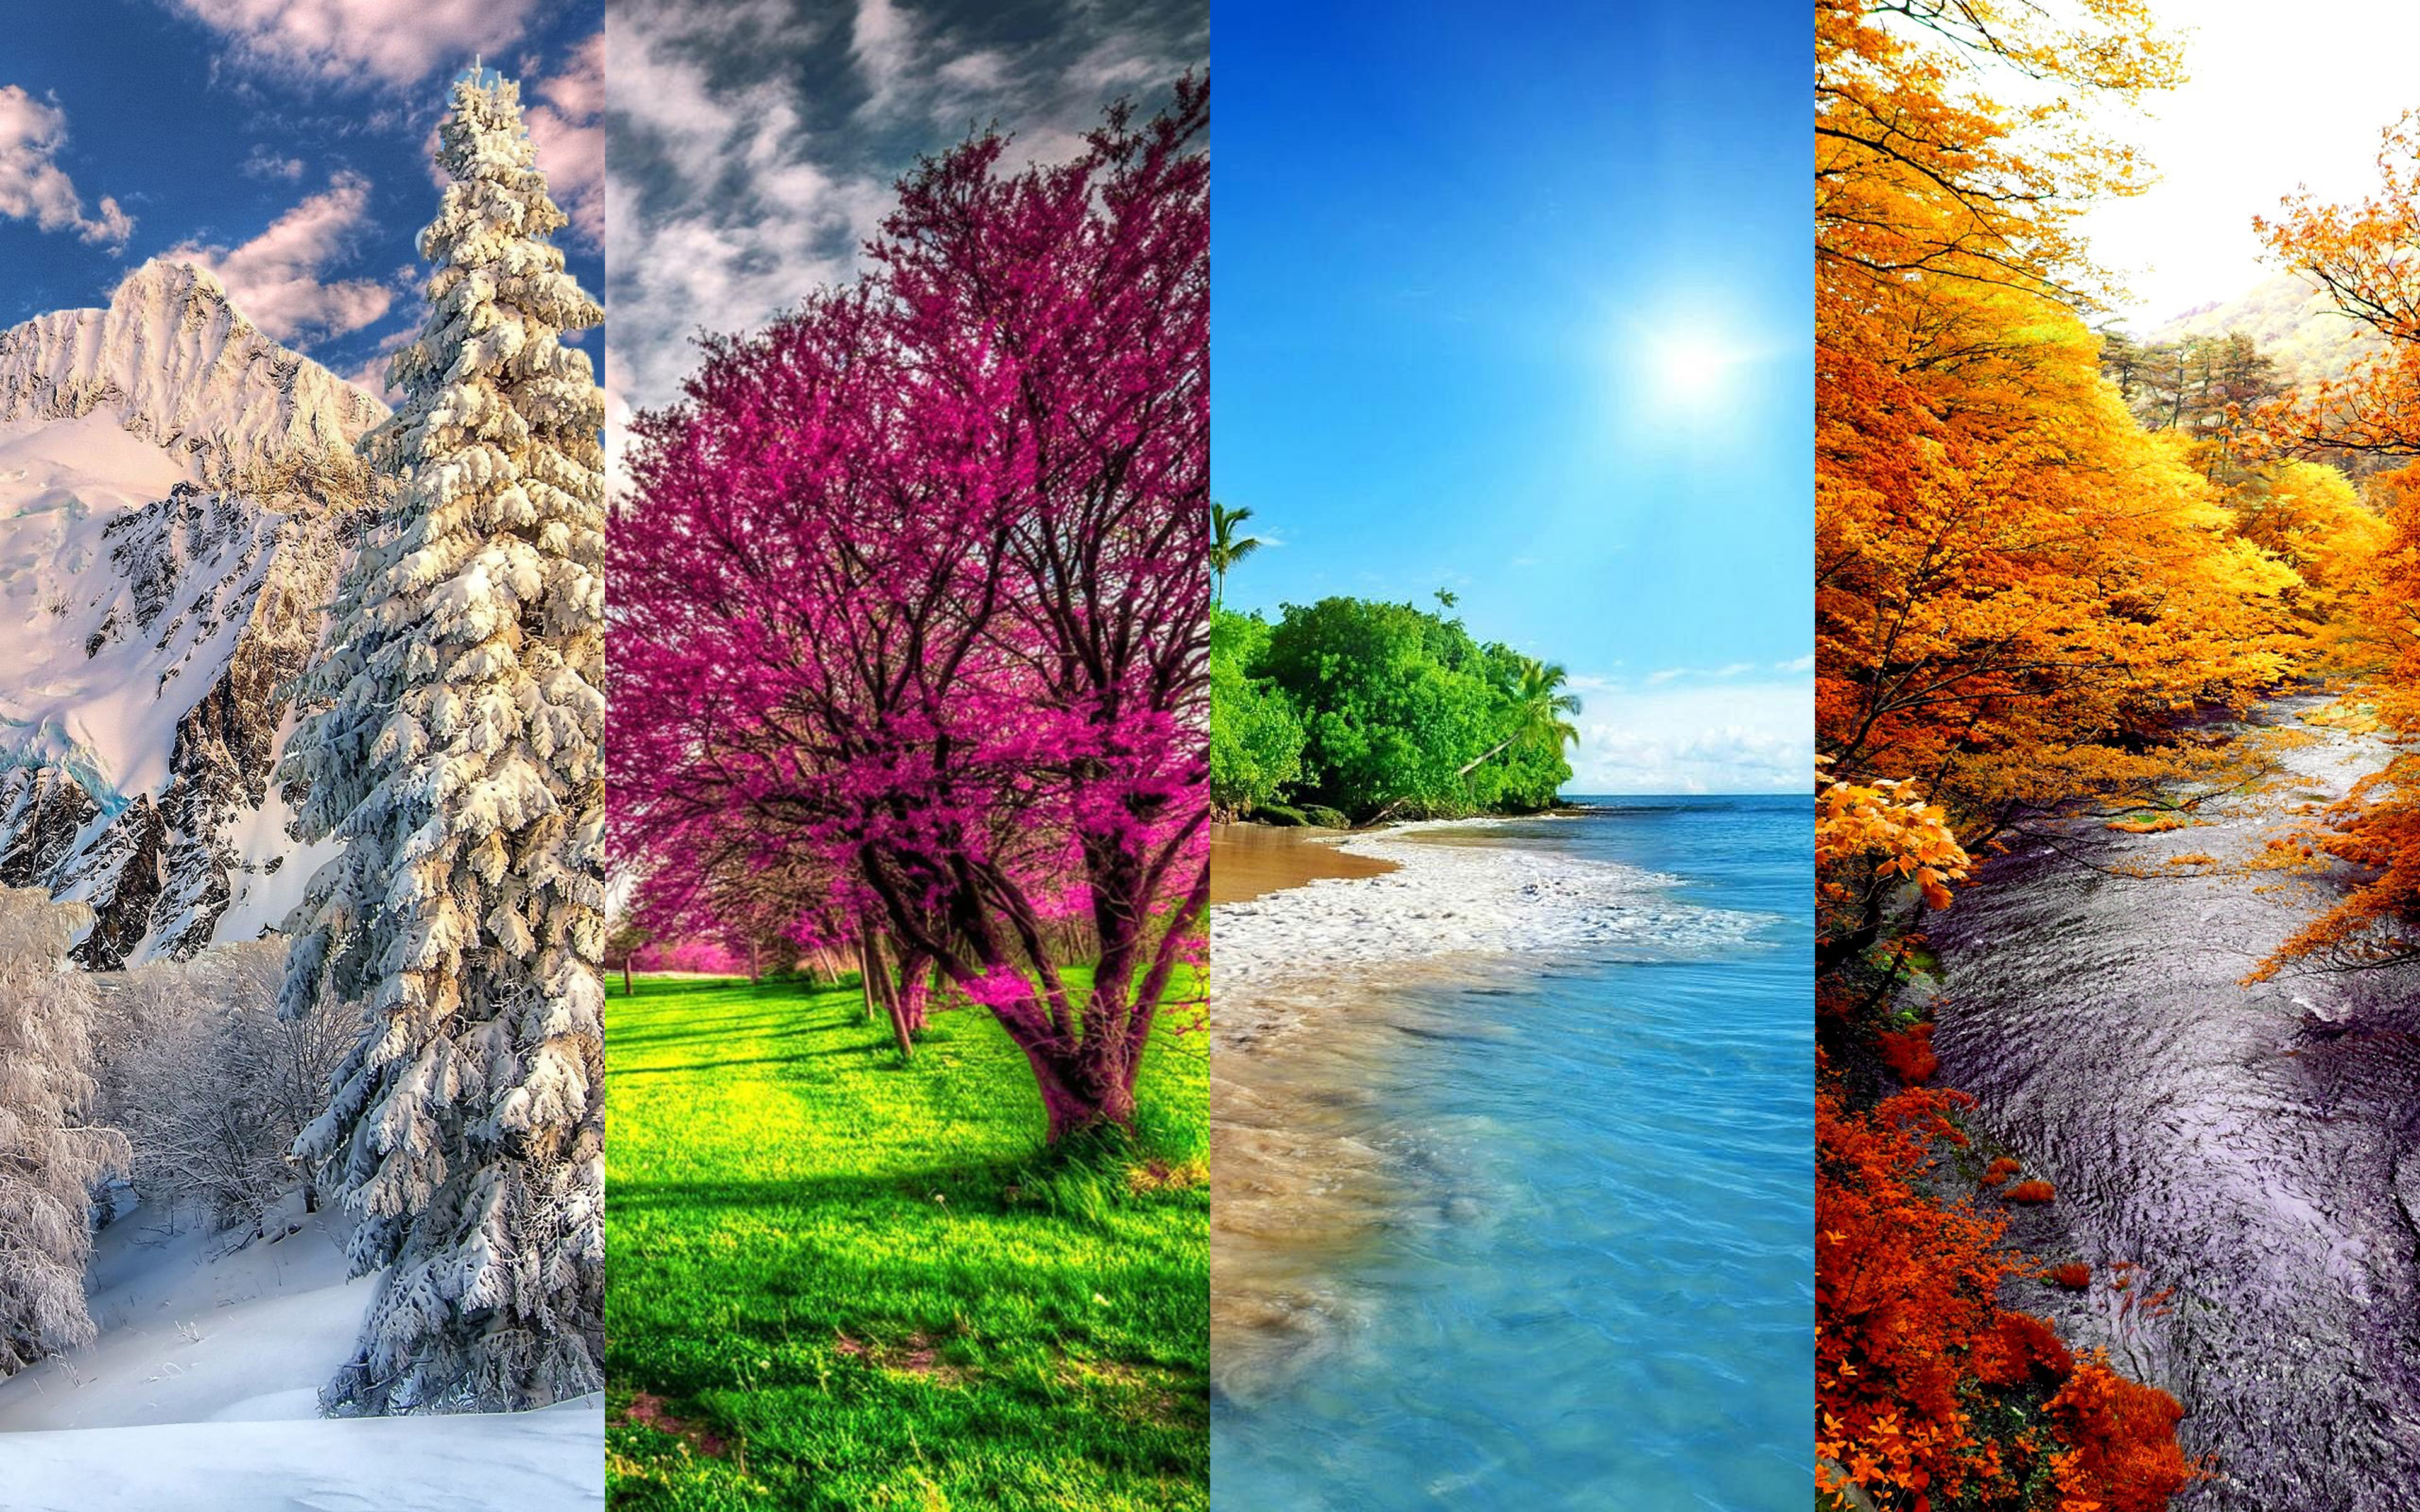 4k Spring Wallpapers High Quality: Download Wallpapers 4 Seasons, 4K, Winter, Spring, Summer